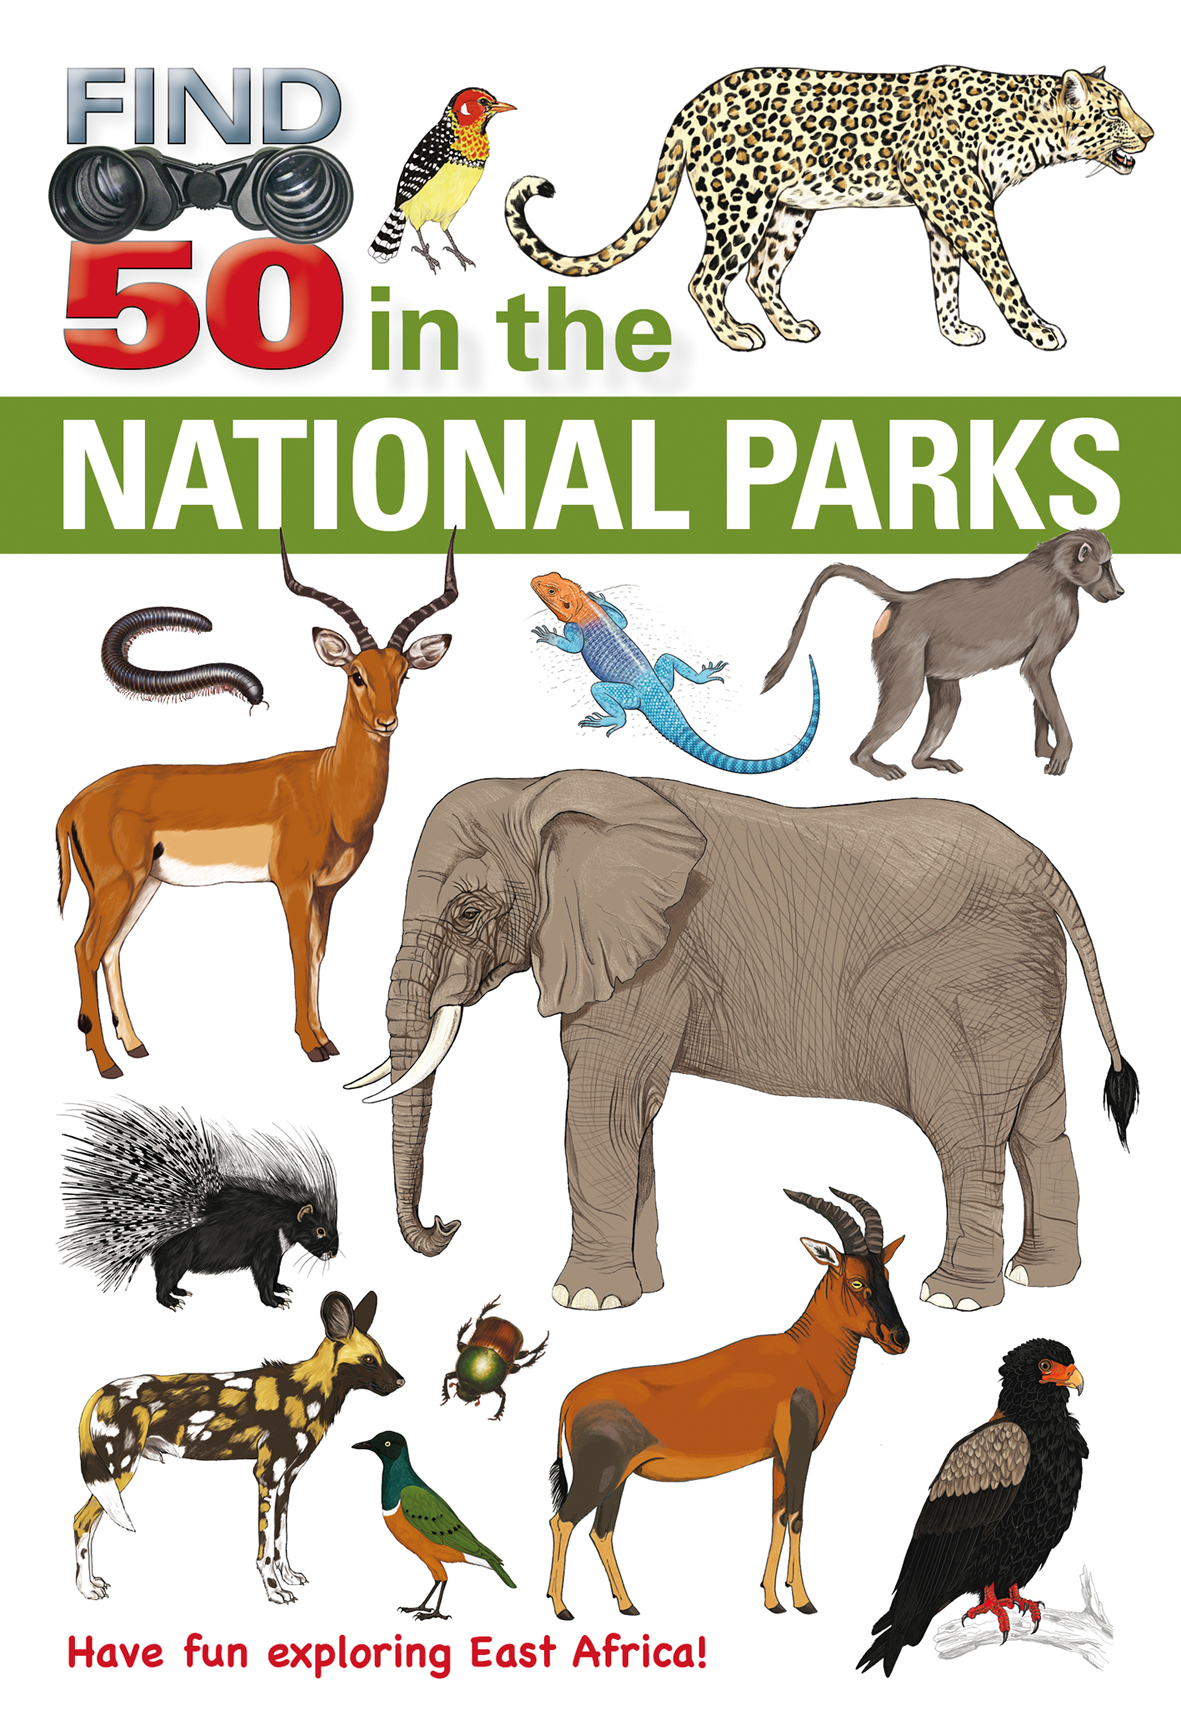 Find 50 in the National Parks of East Africa